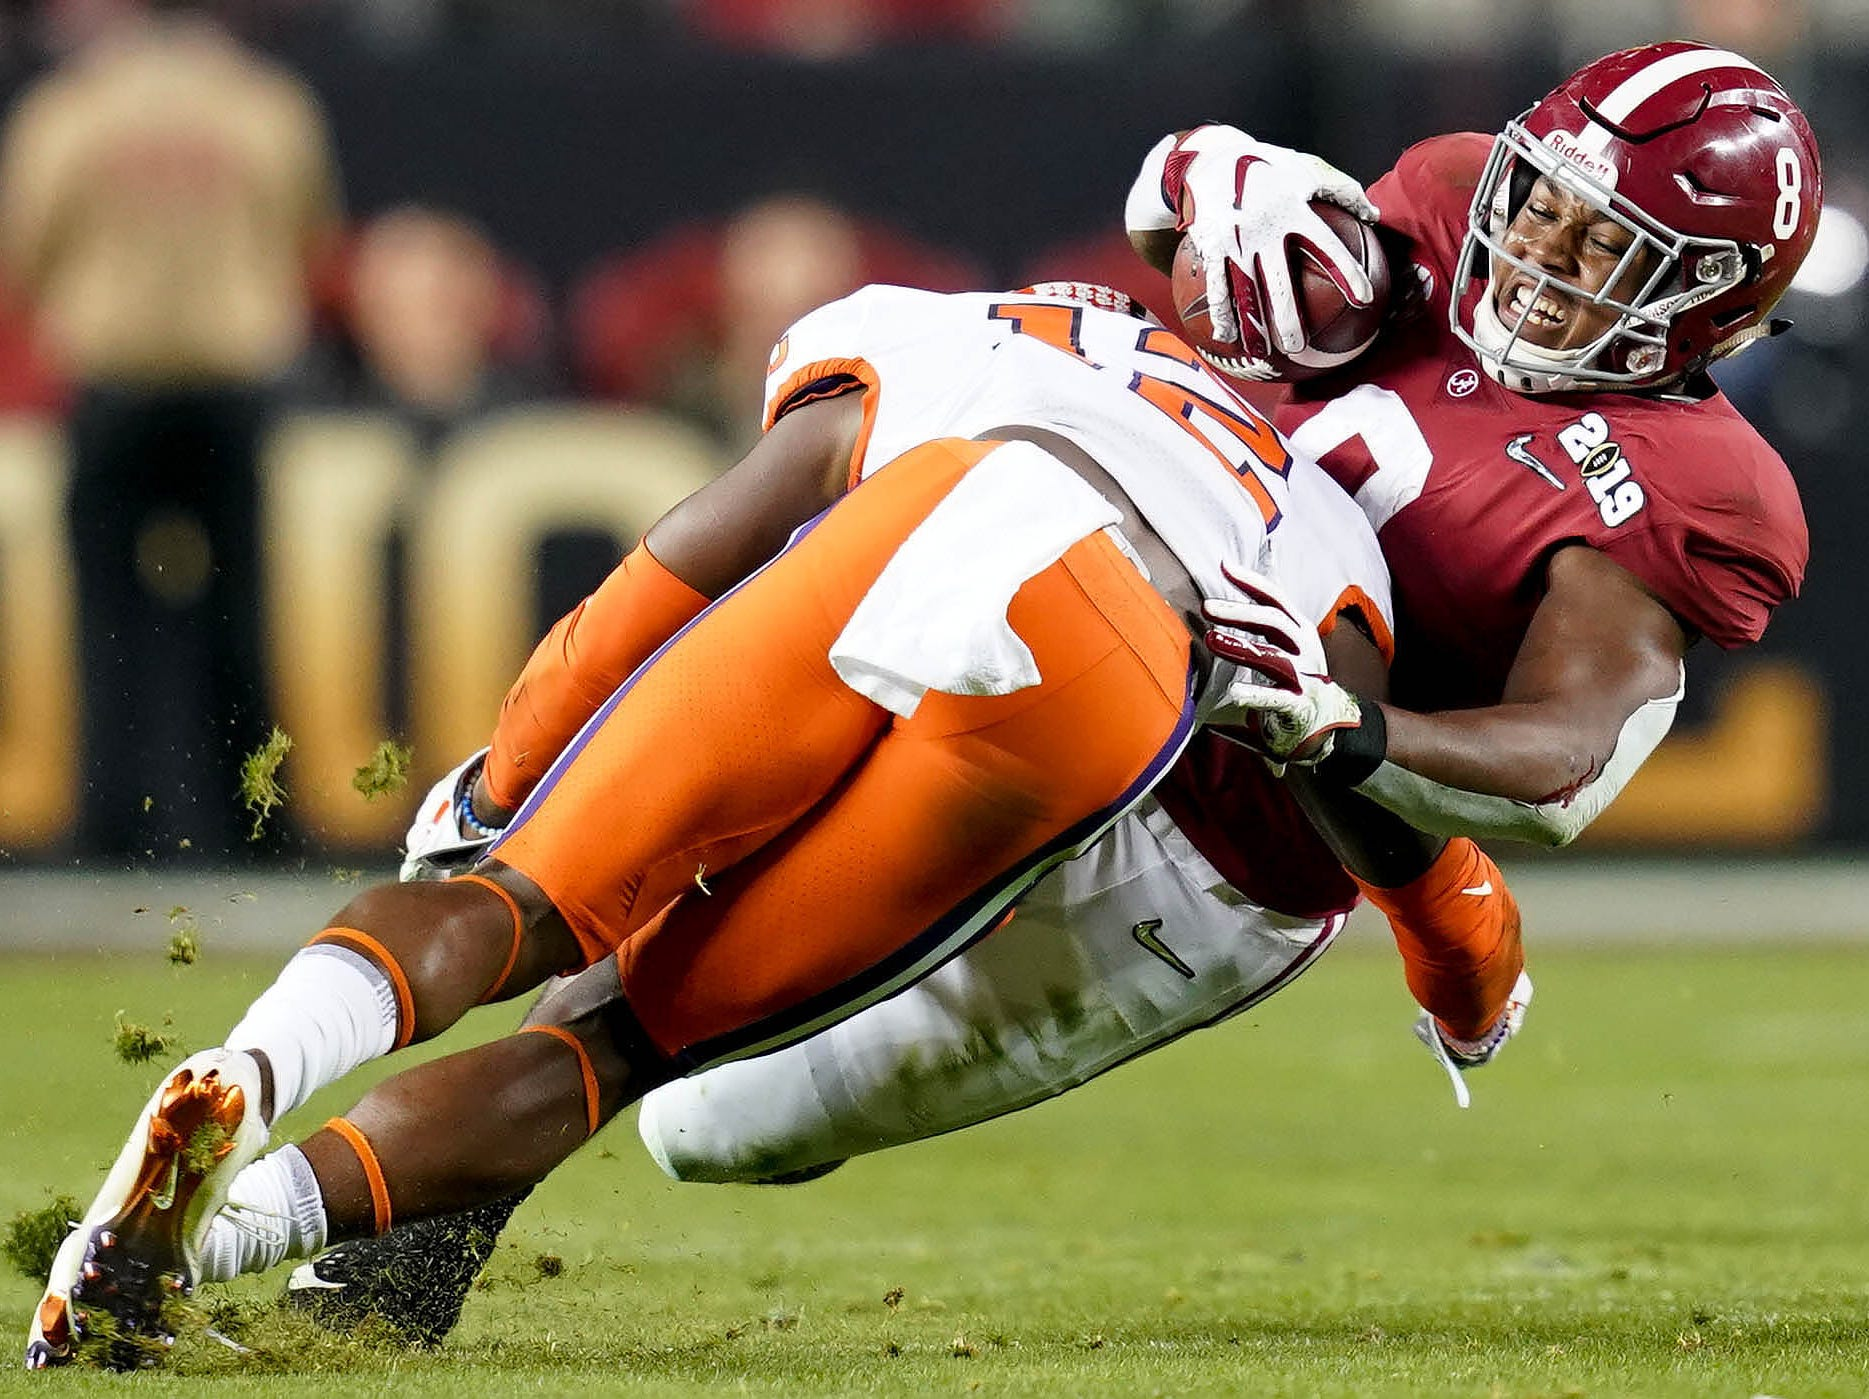 Alabama's  Josh Jacobs is tackled by Clemson's K'Von Wallace in the second quarter.